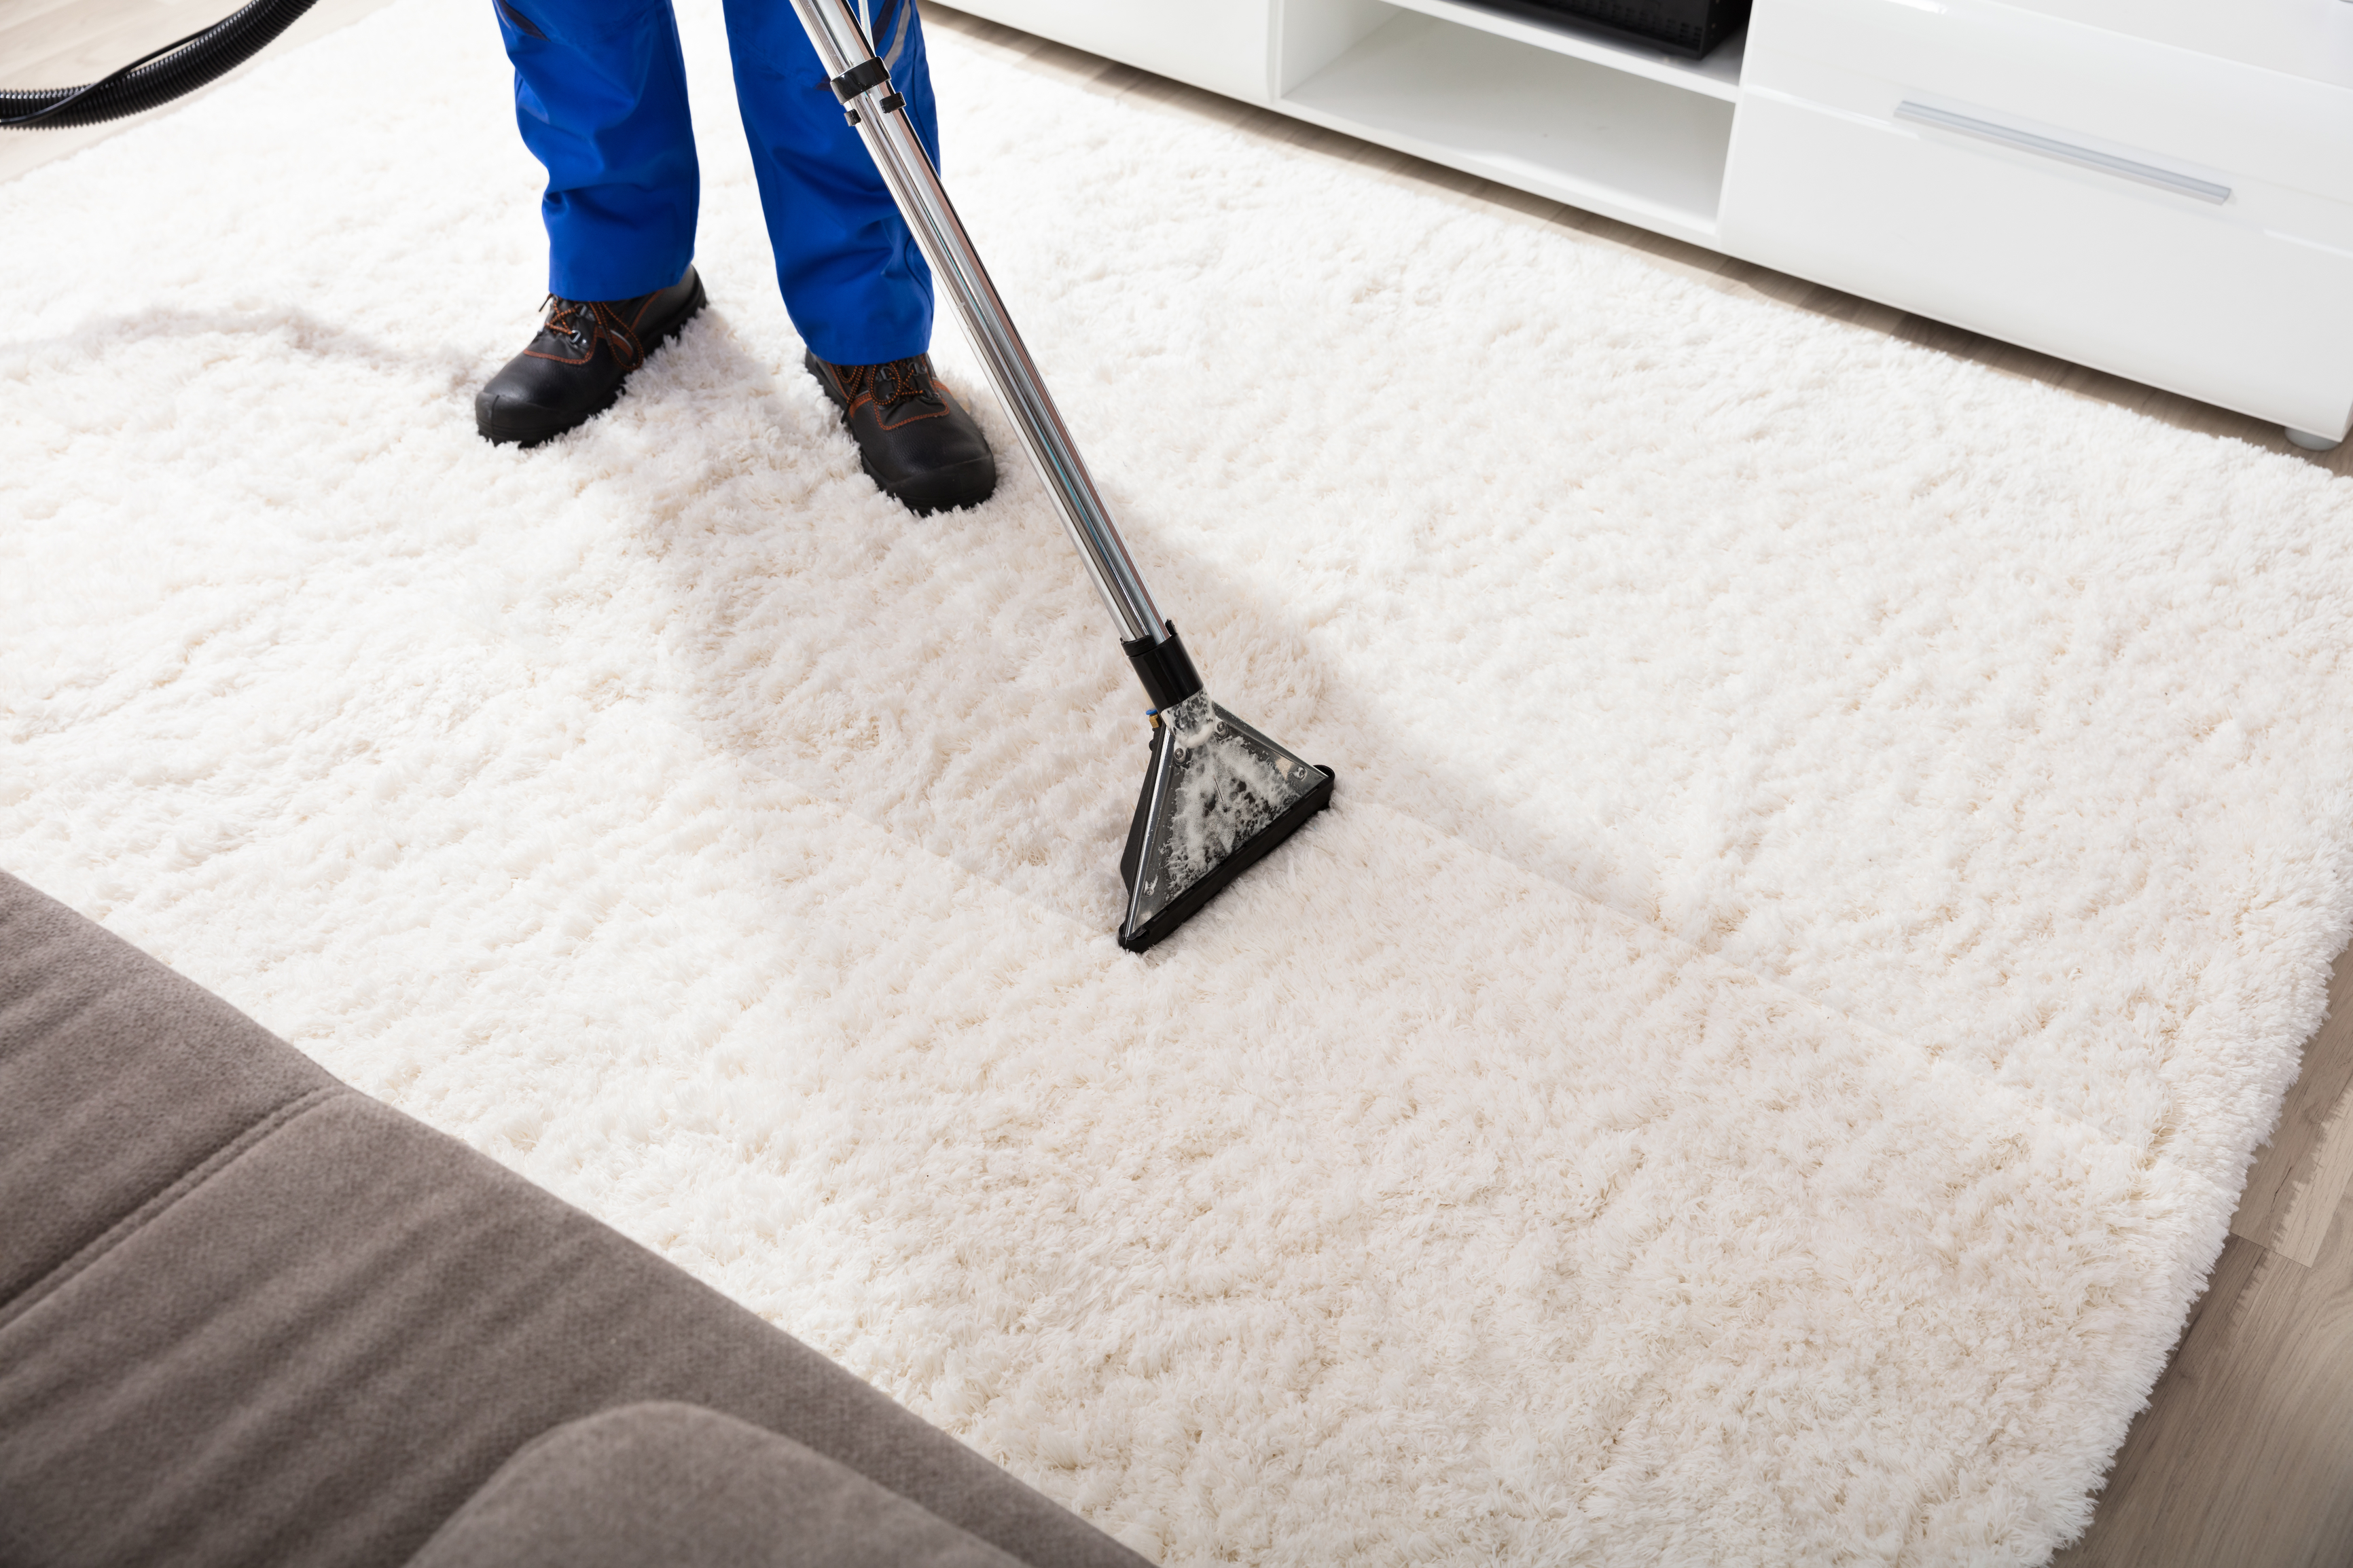 Hitech Cleaning Services